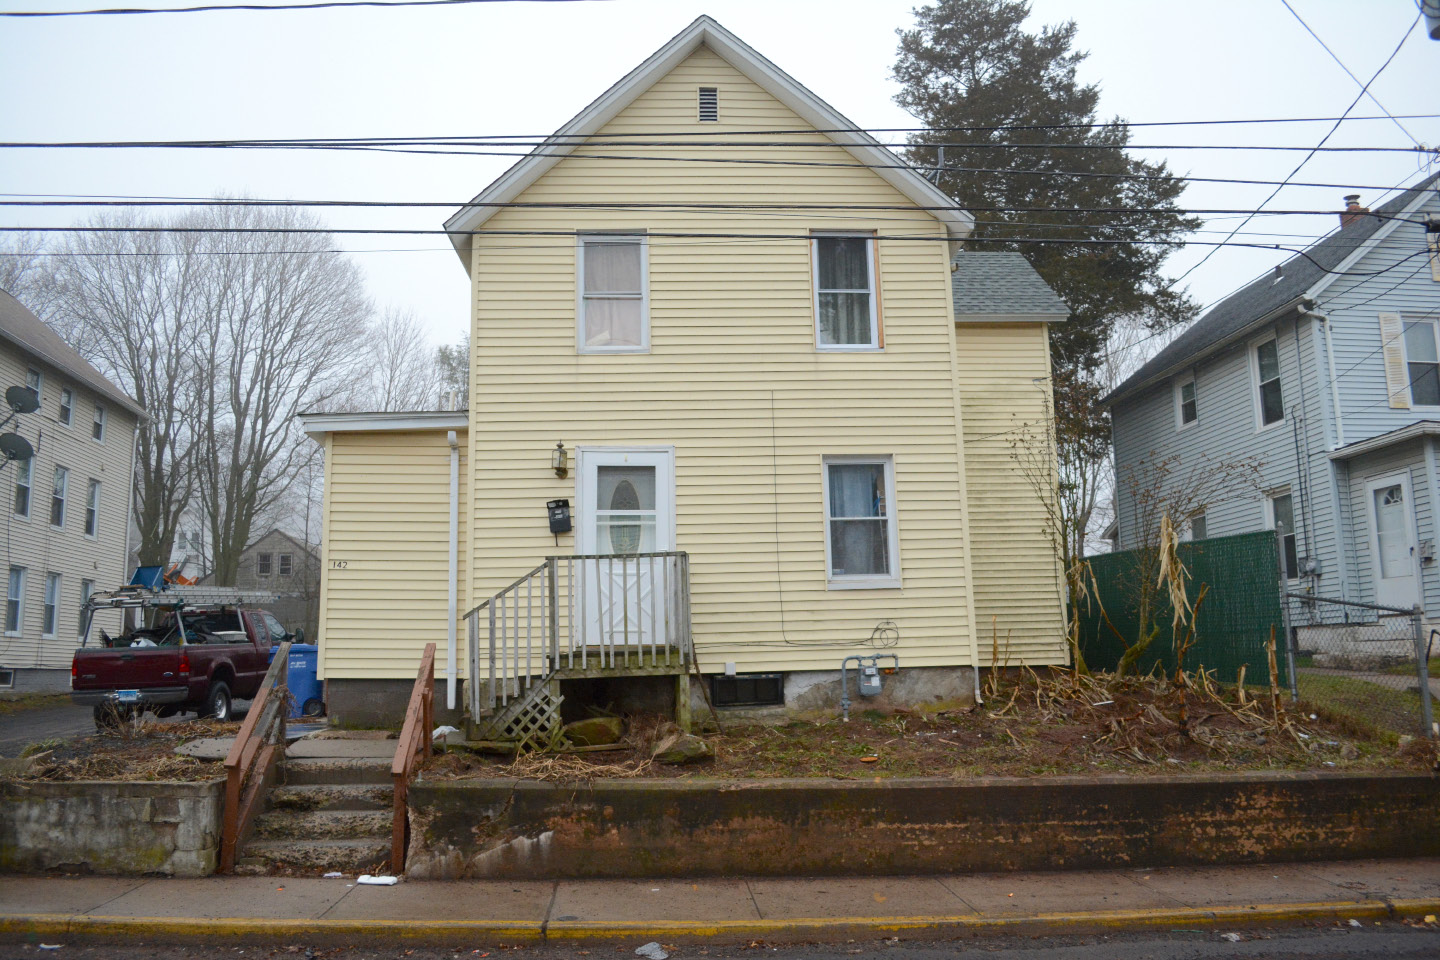 142 Foster St. on Wednesday, March 1. | Bryan Lipiner, Record-Journal